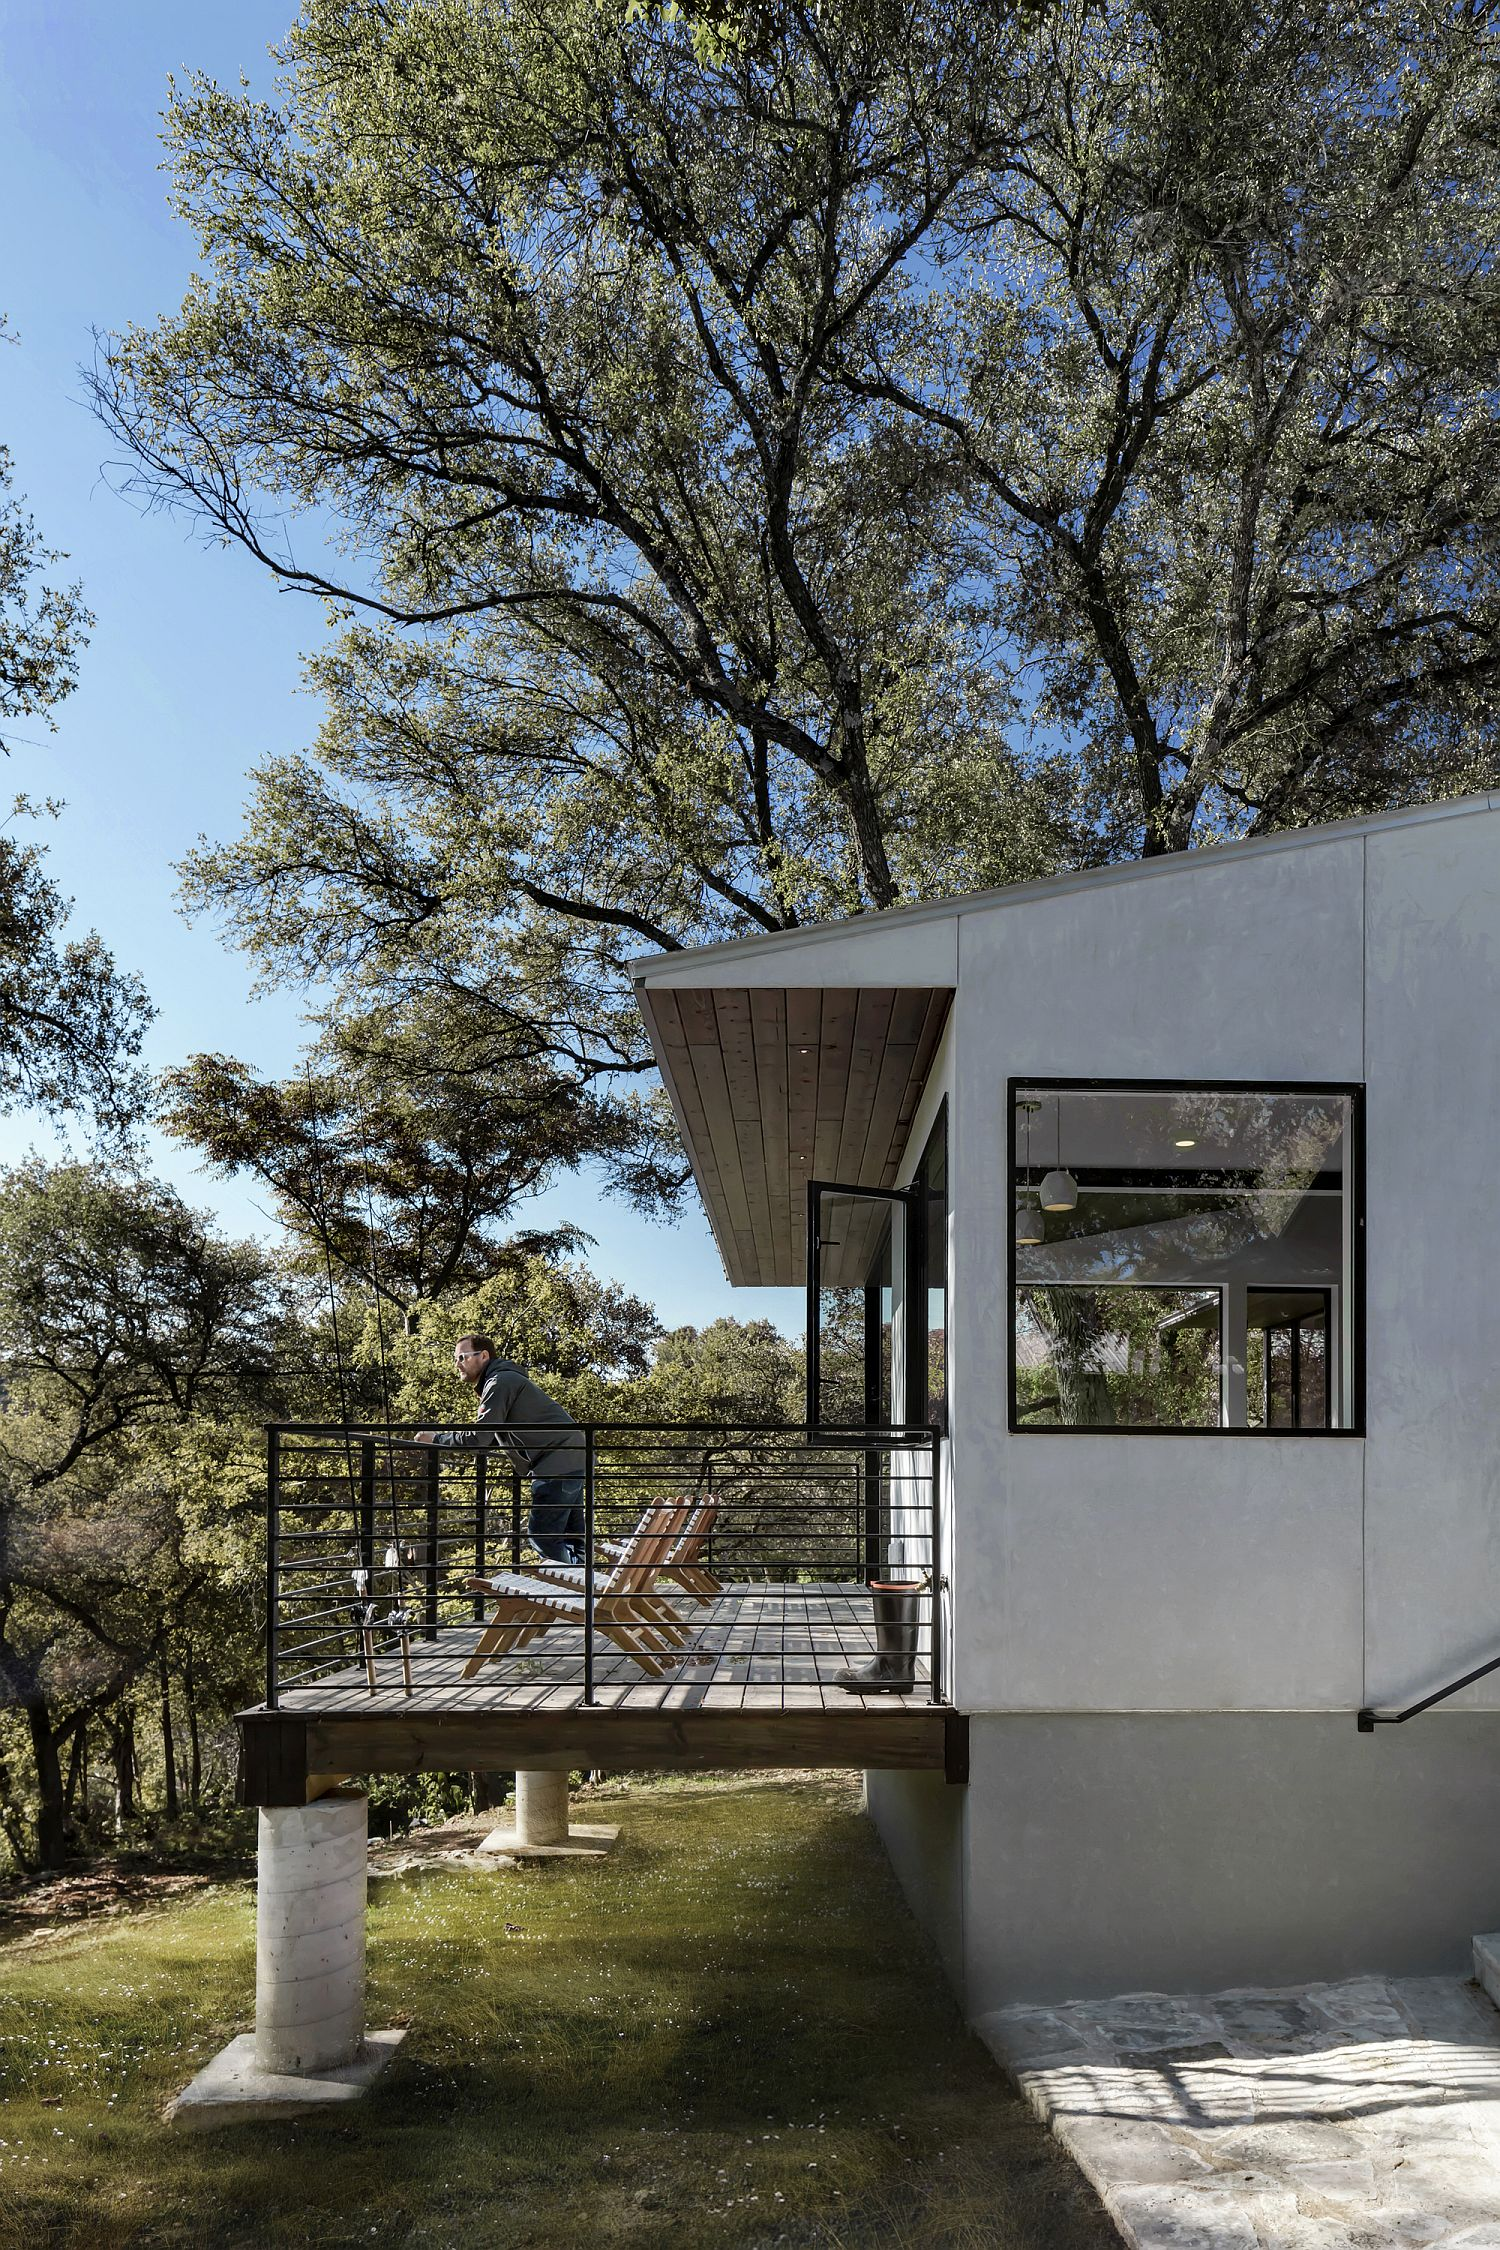 Cantilevered-deck-offers-a-view-of-the-outdoors